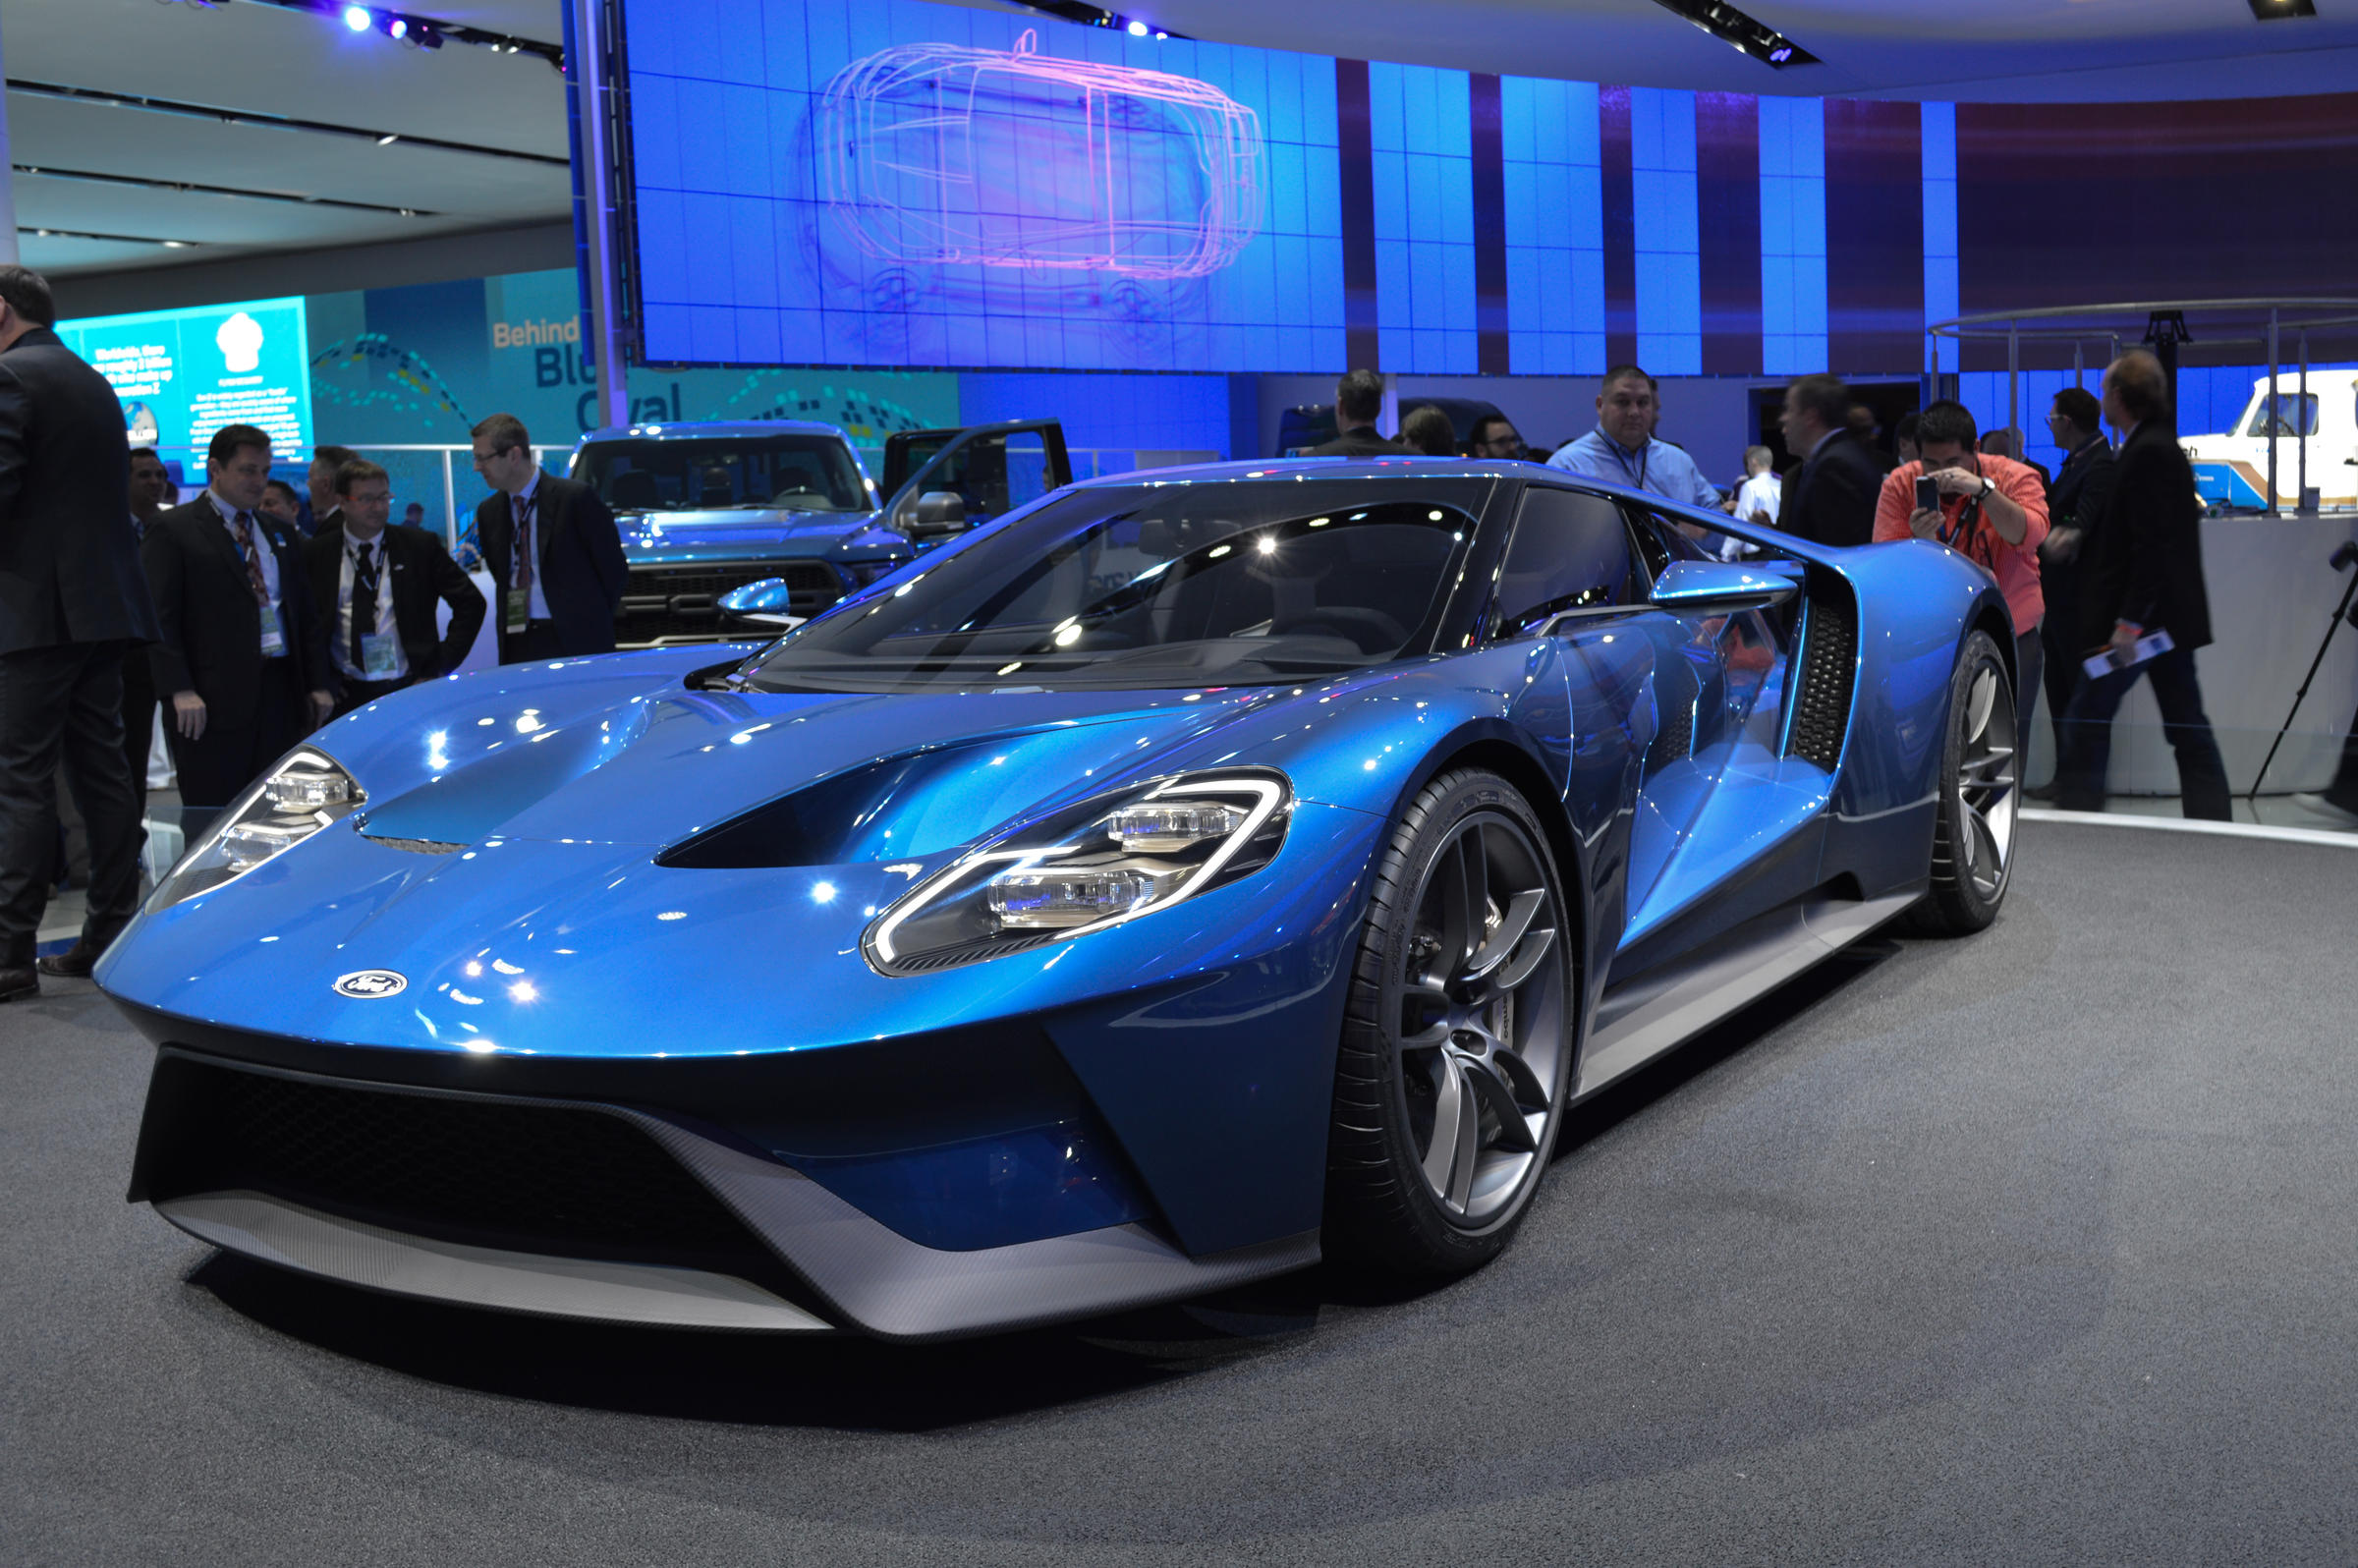 photos: concept cars at the 2015 north american international auto